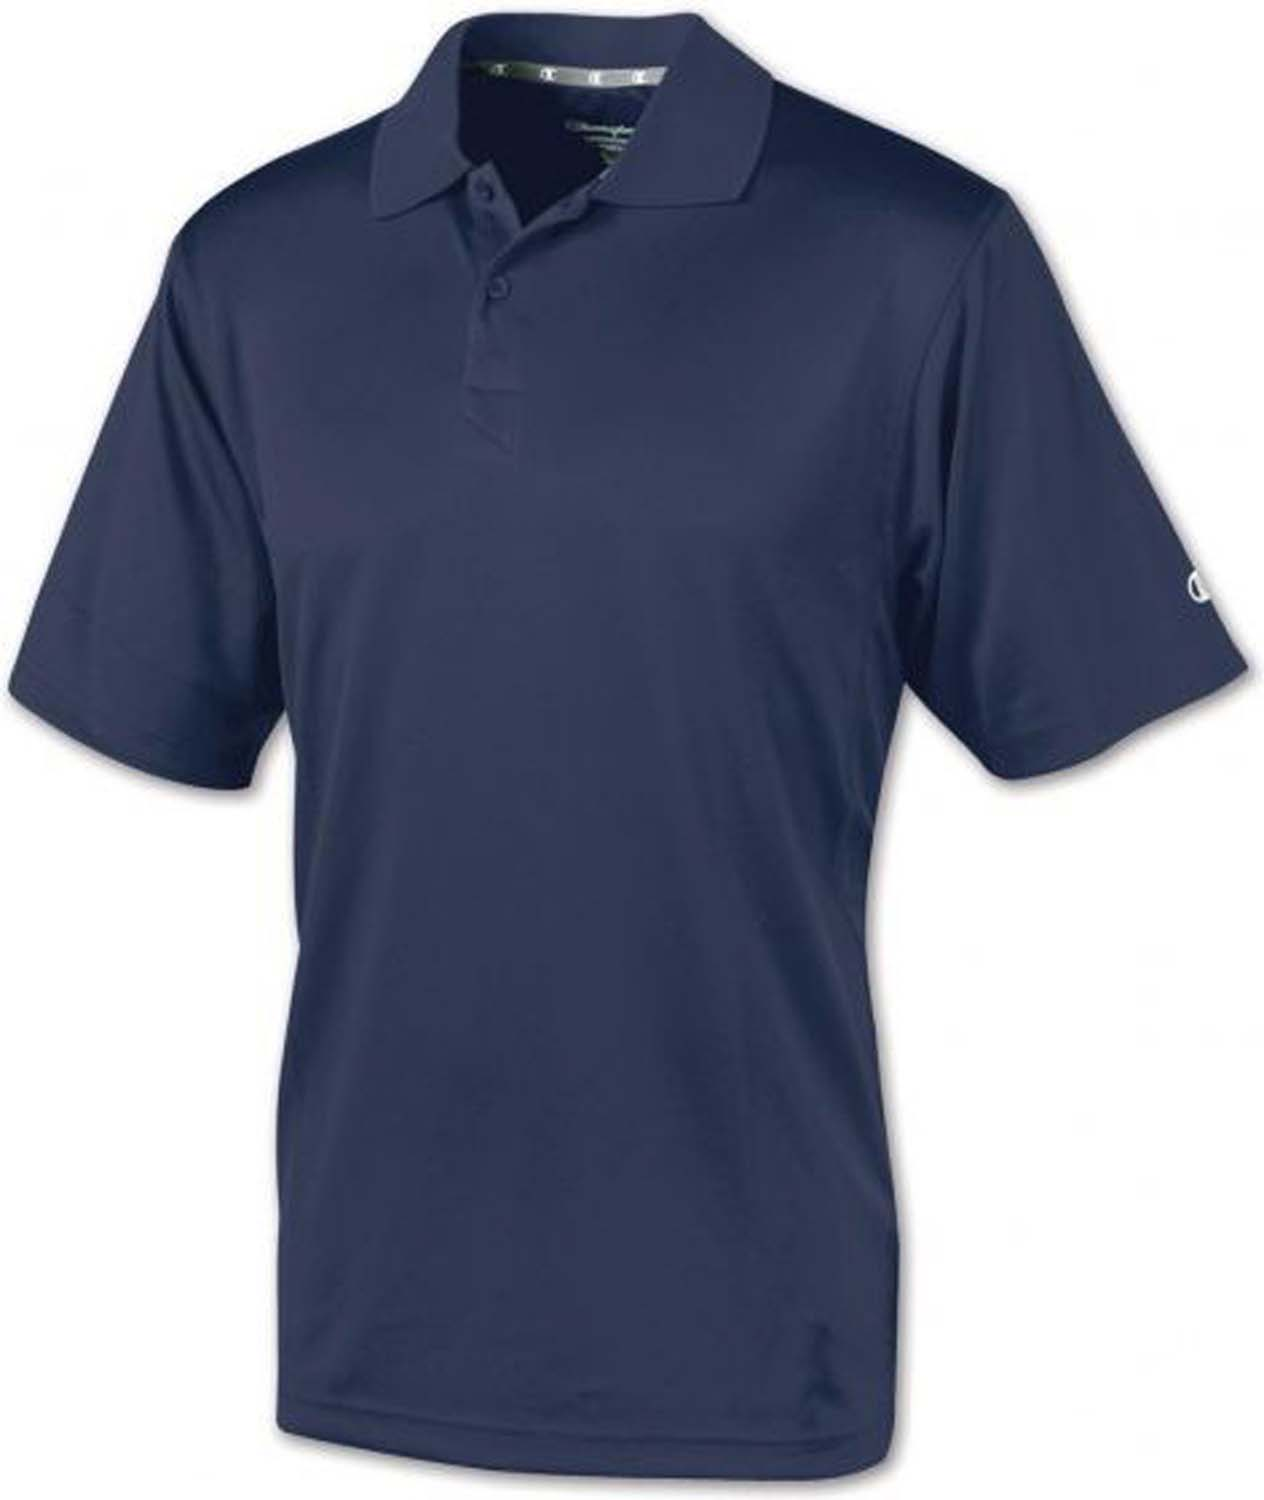 Champion Ultimate Double Dry Polo - Navy/medium - 70097 - Team Sports Ultimate 70097